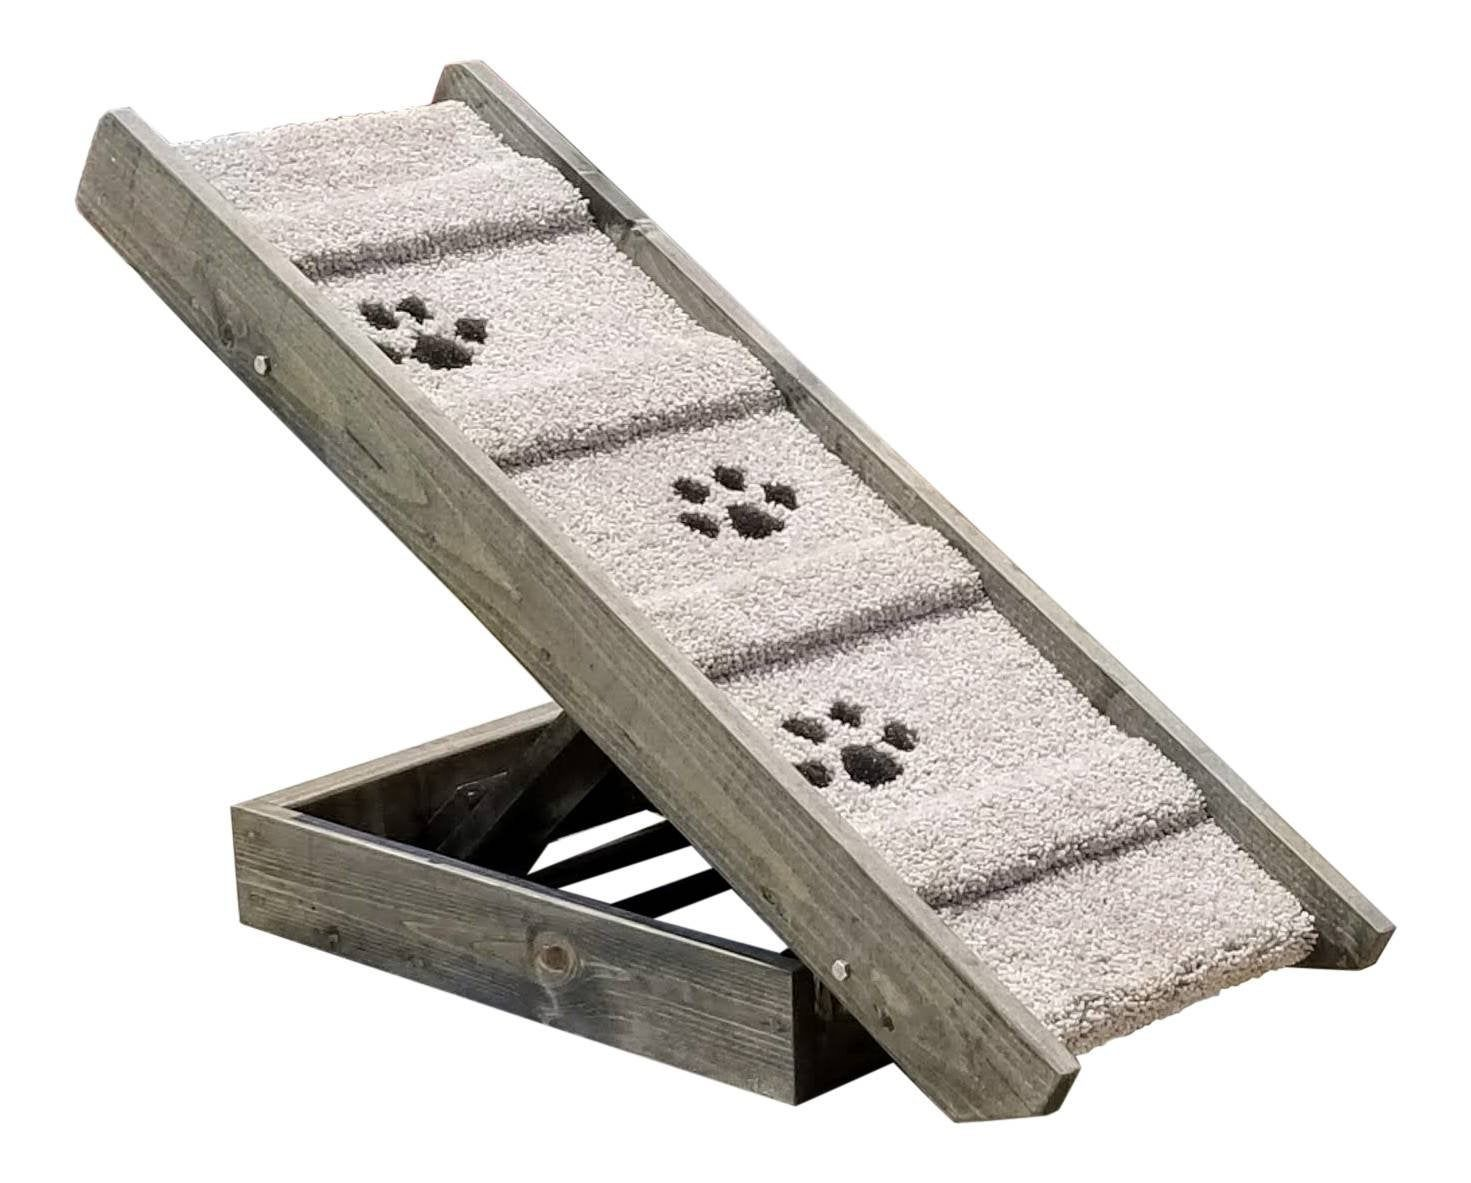 Pin on Dog Ramps 18 Inches30 Inches High